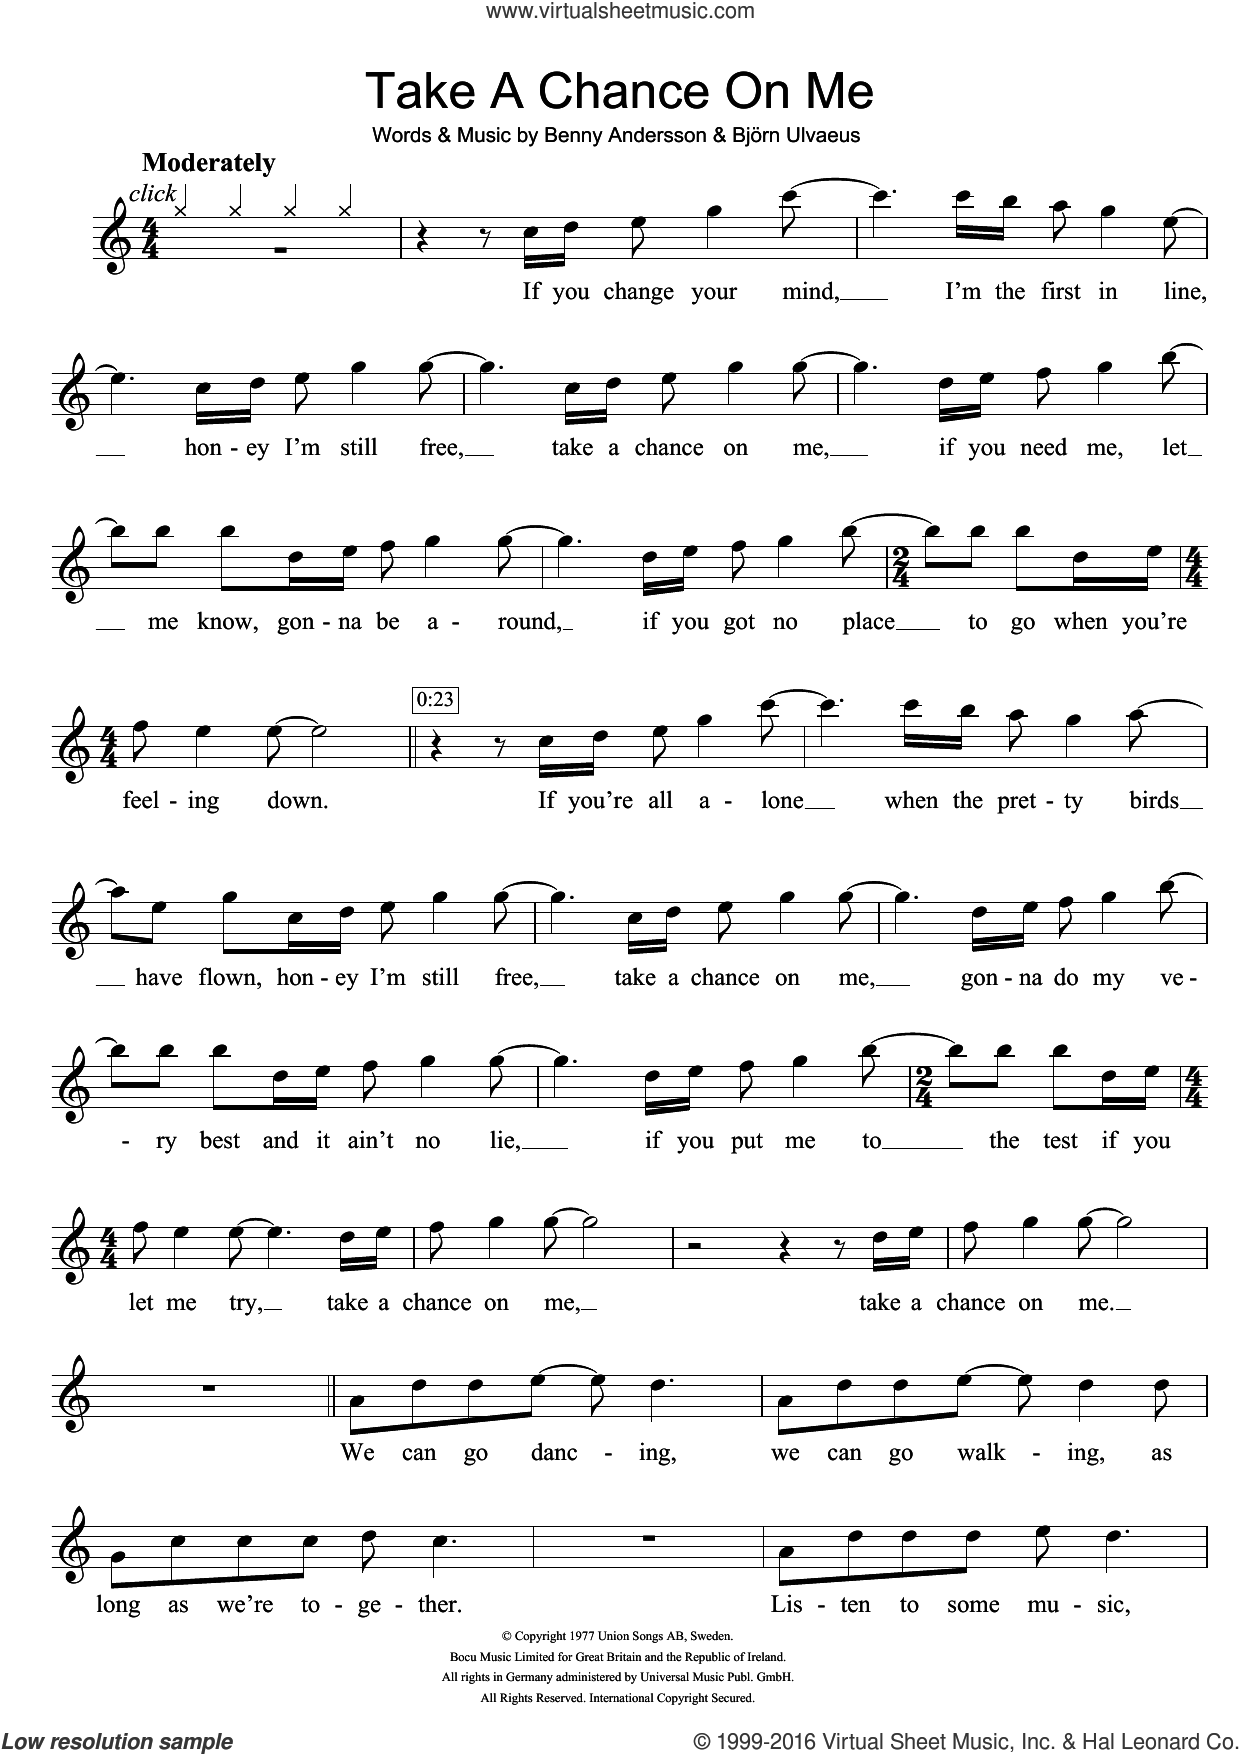 Take A Chance On Me sheet music for flute solo by Bjorn Ulvaeus, ABBA and Benny Andersson. Score Image Preview.